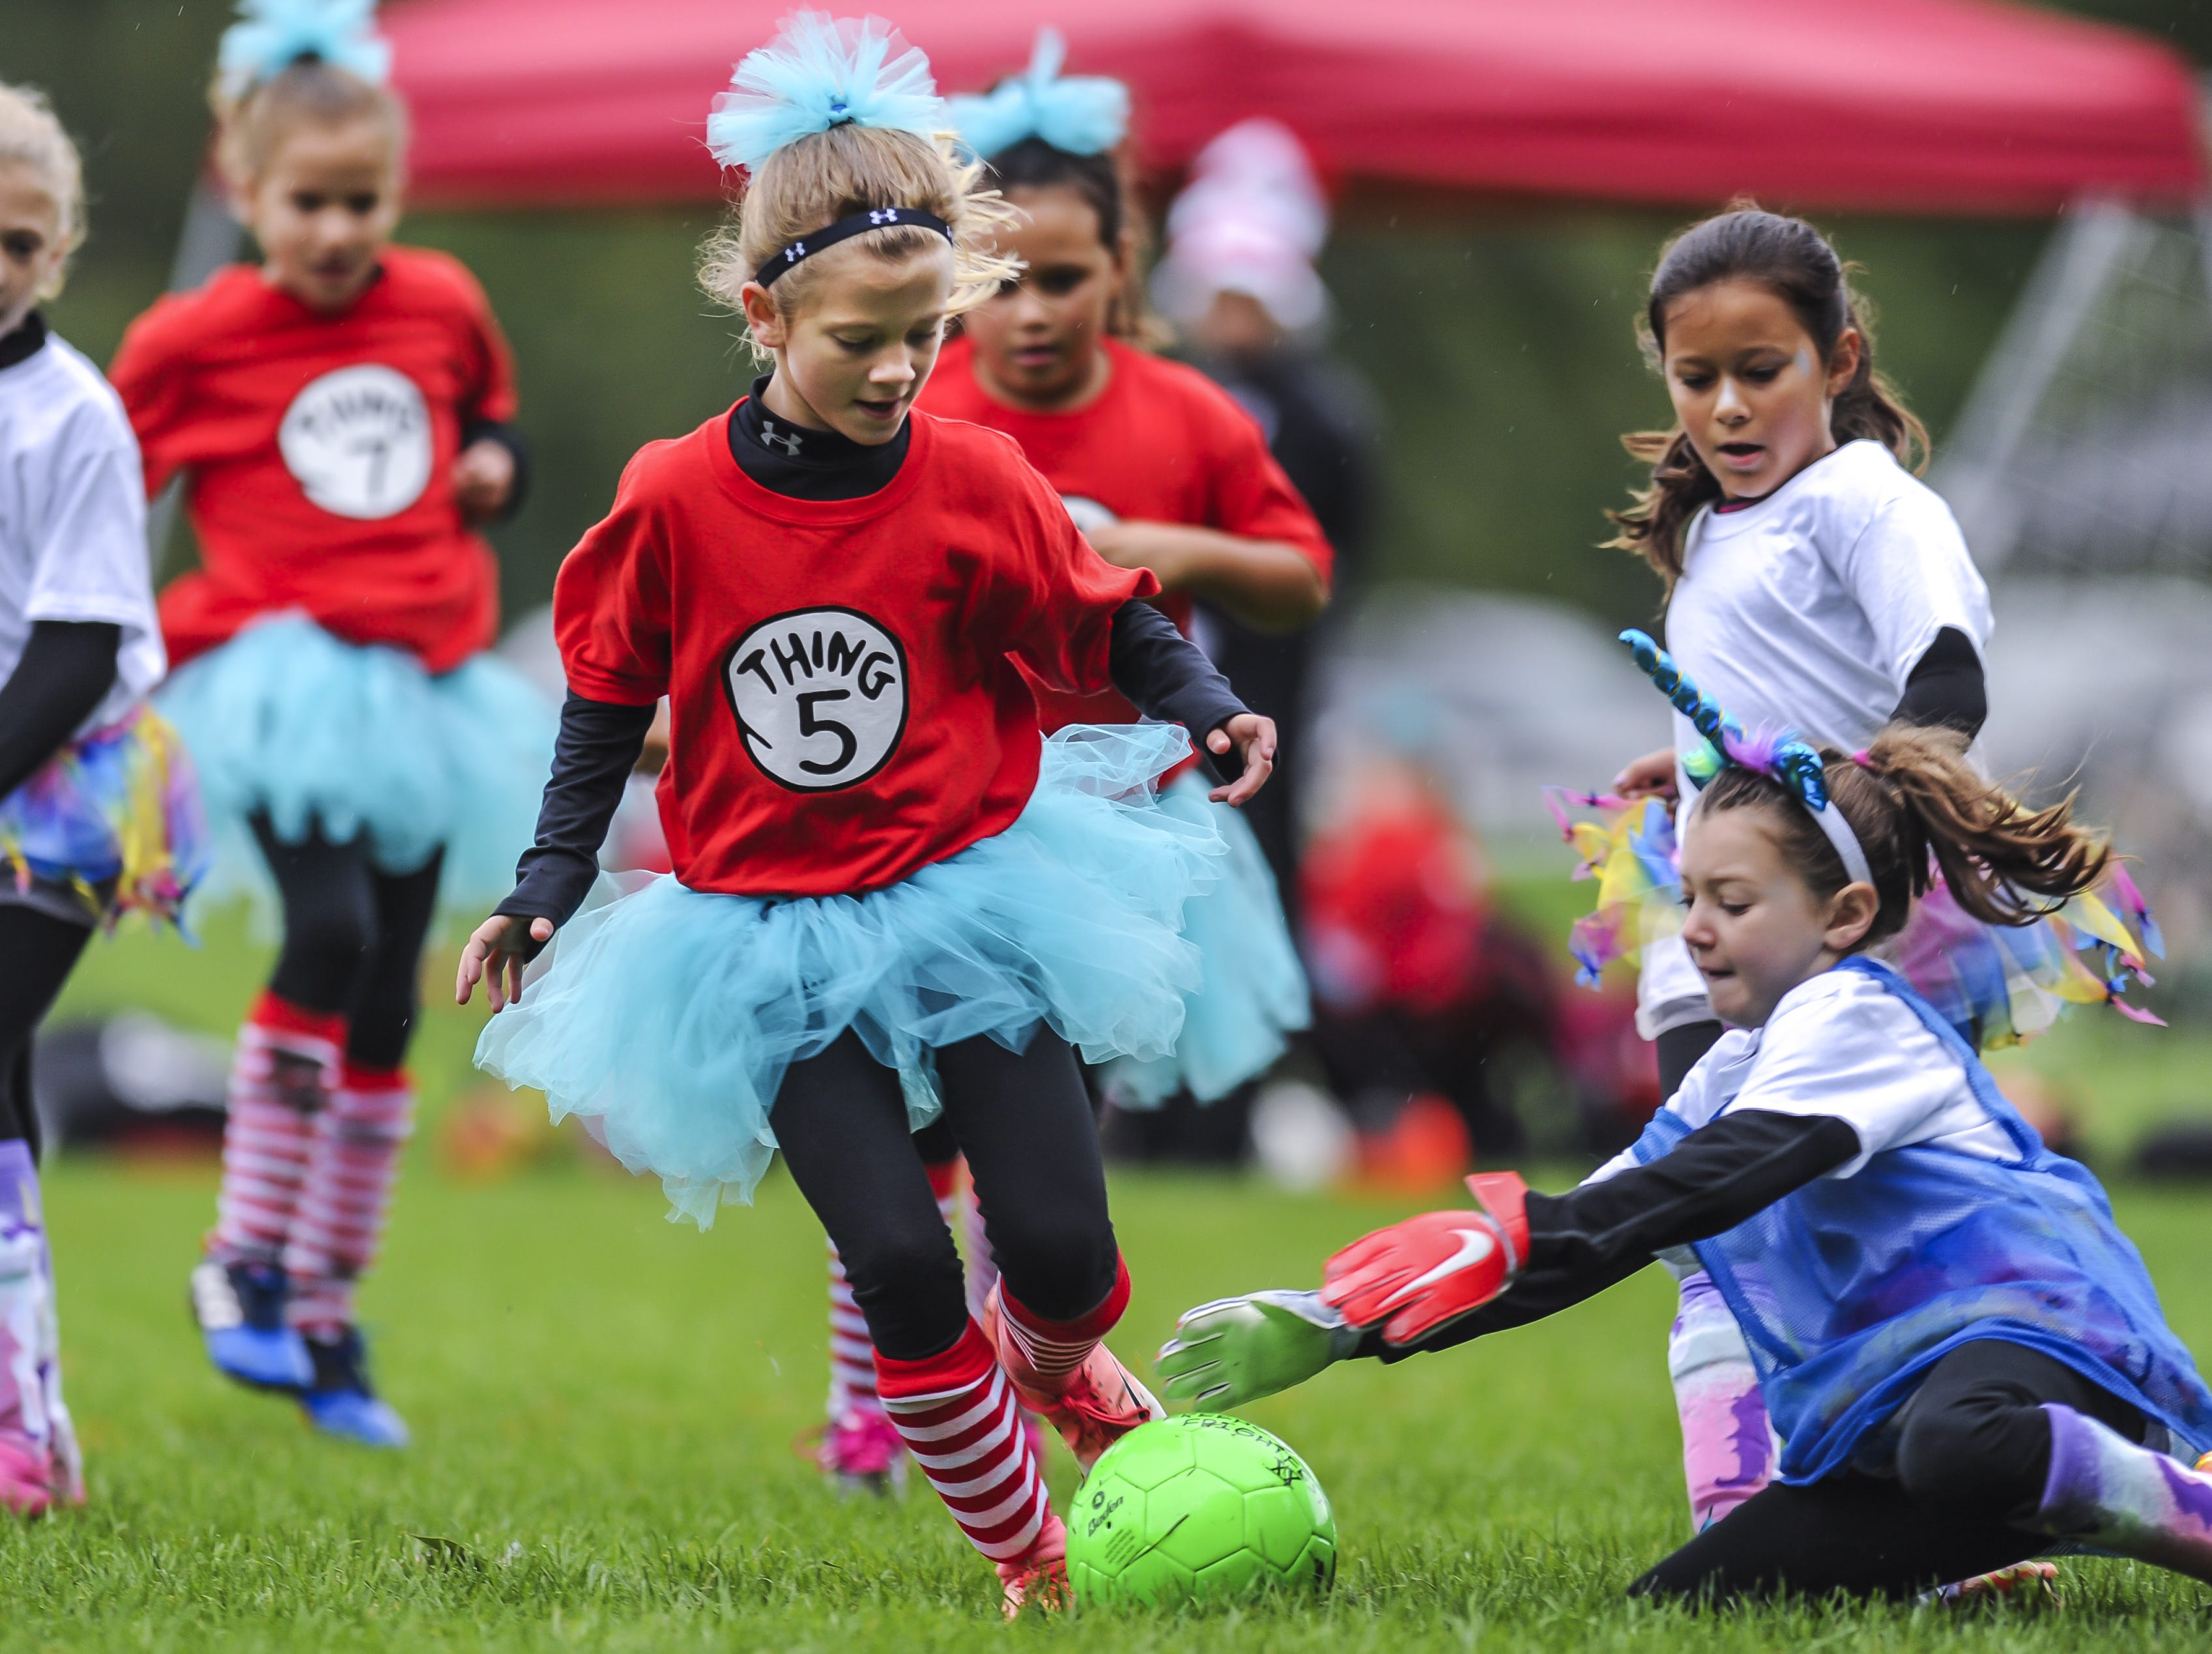 Addison Blackburn of the Jackson Vipers tries to maneuver the ball around goalkeeper Sienna Levine of Manalapan Sky Blue at Michael J. Tighe Park in Freehold on Oct. 13, 2018. Freehold Soccer League hosted their 20th Halloween-themed Fright Fest Tournament where teams wear Halloween costumes as uniforms and the fields are decked out with spooky decorations.